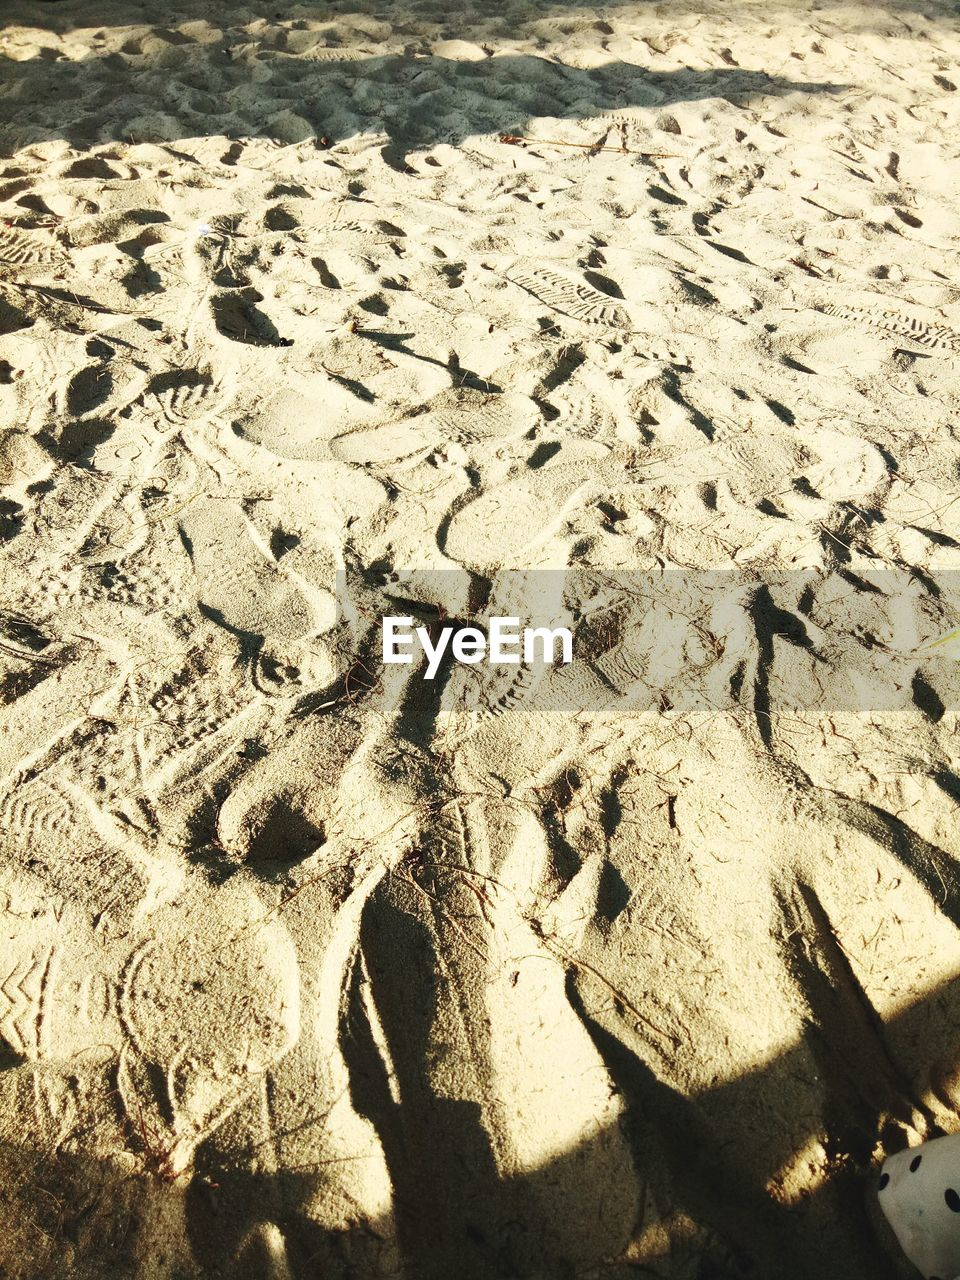 sand, beach, sunlight, nature, day, outdoors, no people, footprint, high angle view, shadow, water, sea, beauty in nature, close-up, animal themes